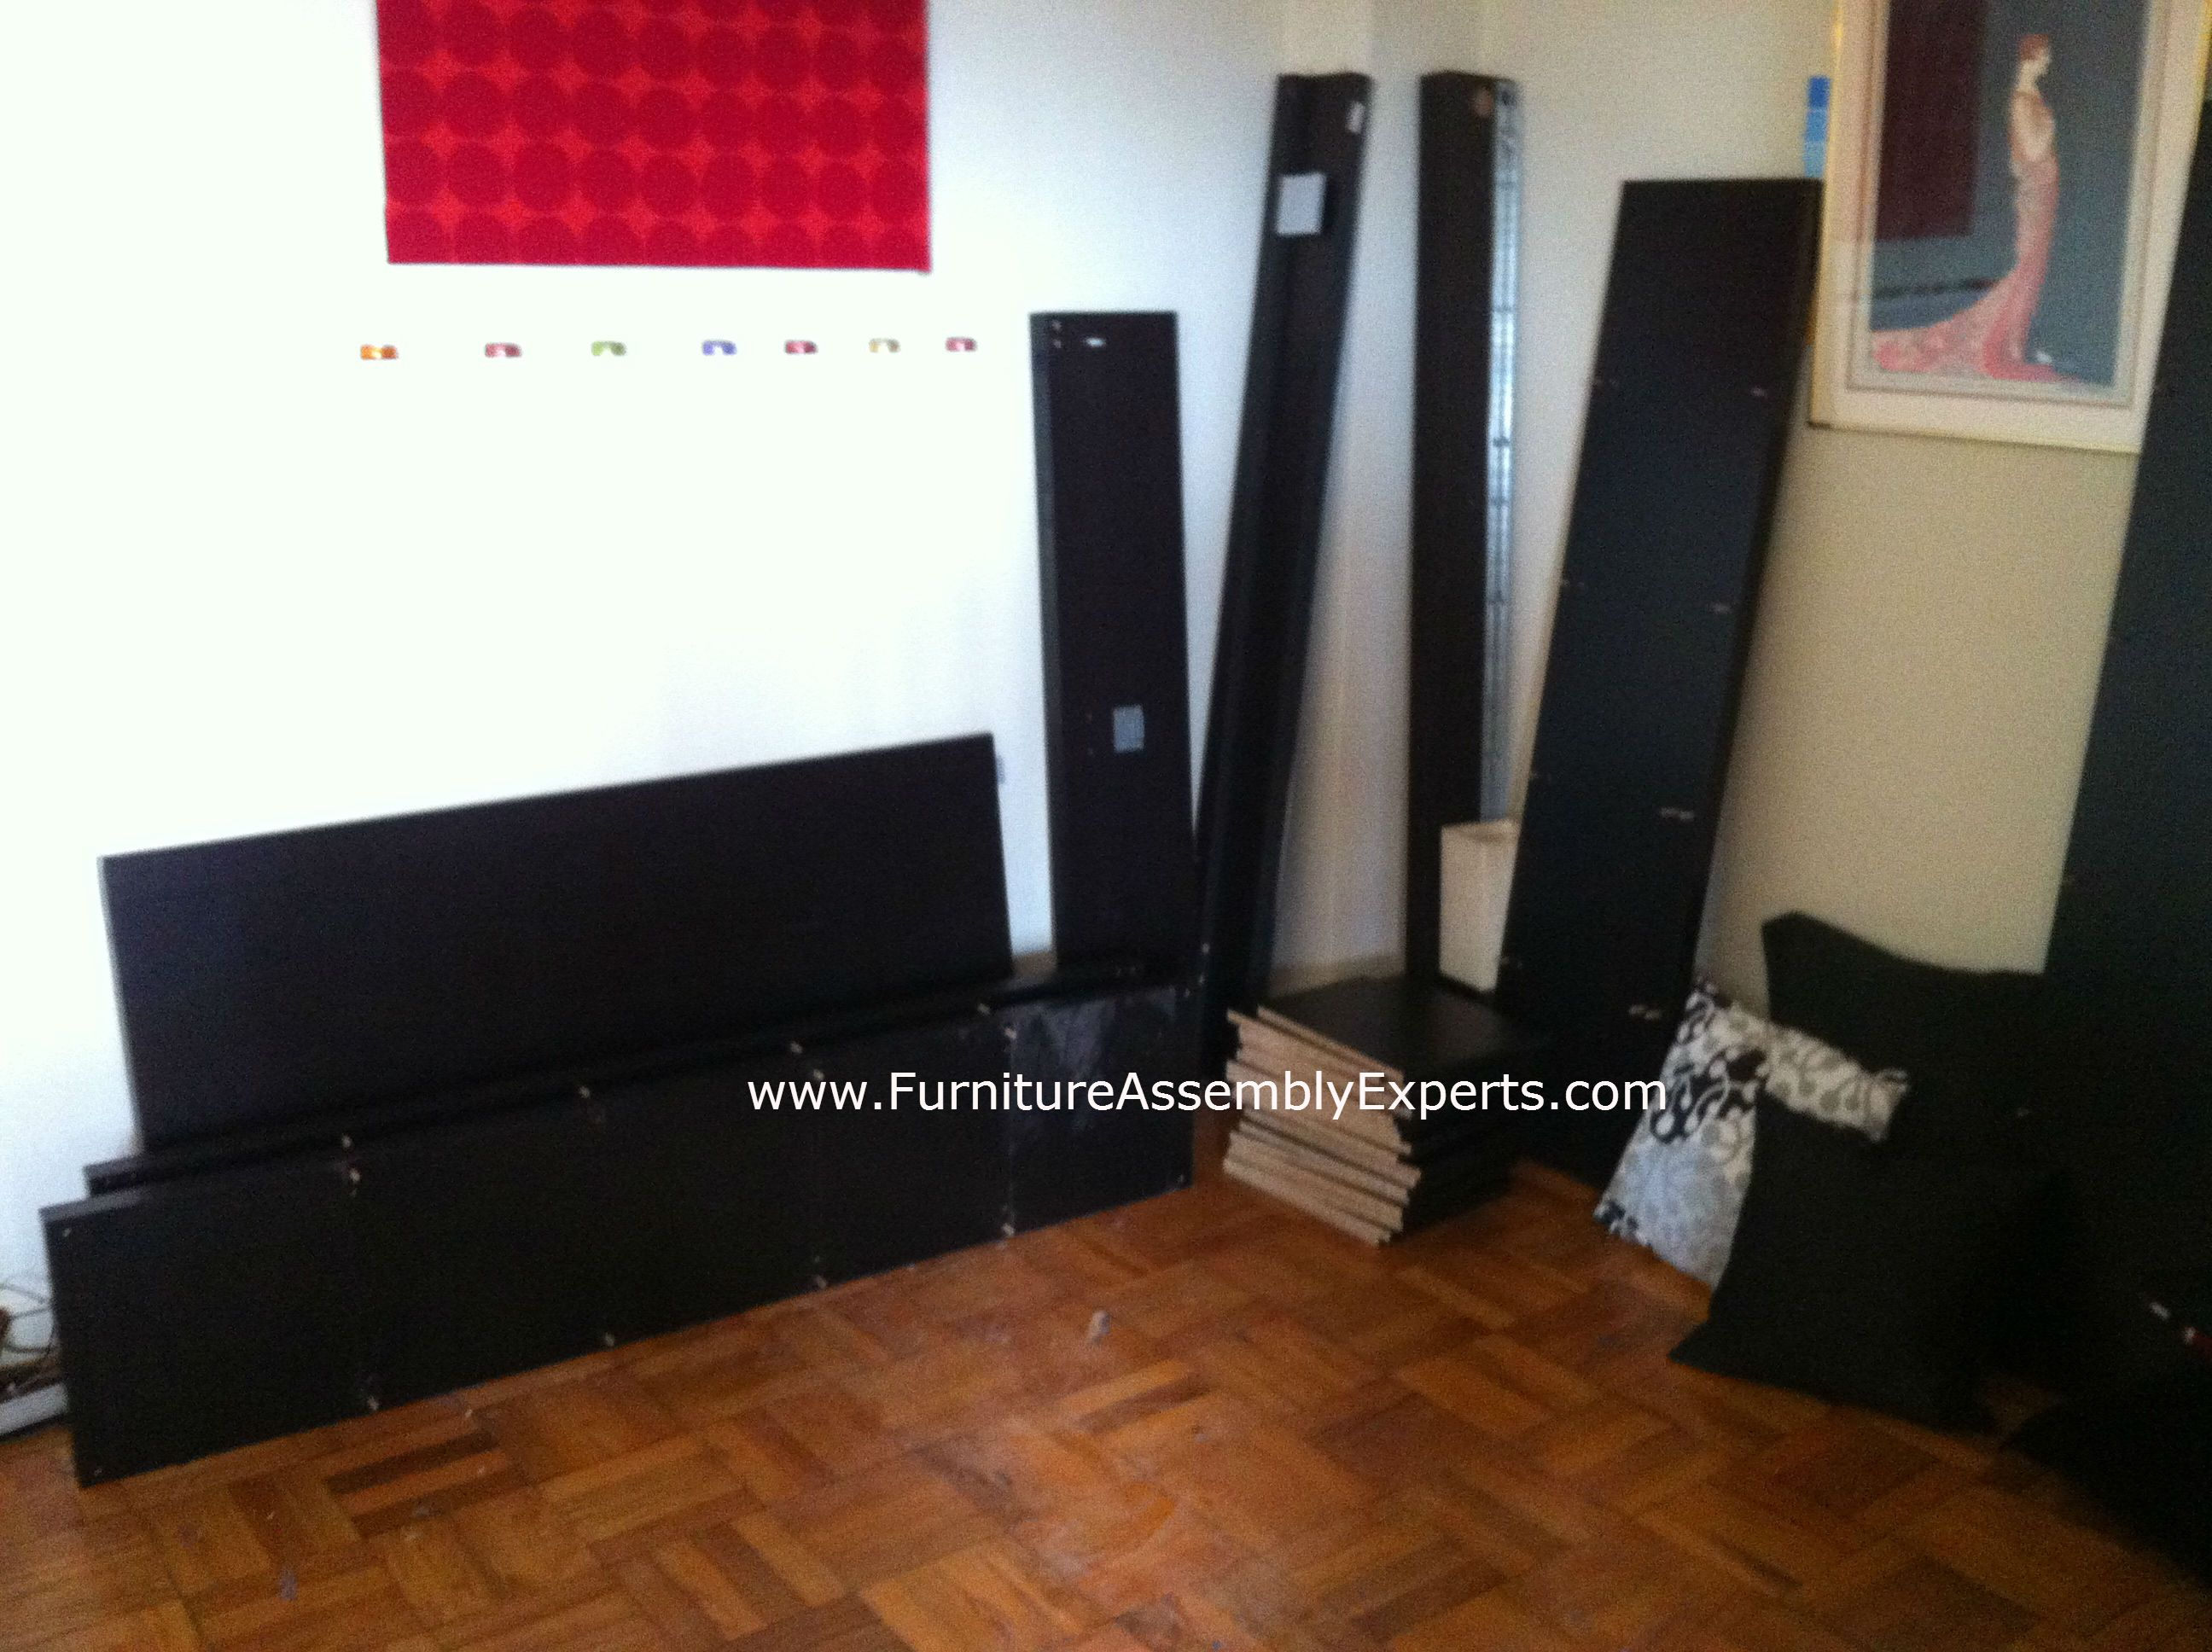 Ikea Malm Bed And Expedit Bookshelf Disassembled In Washington Dc